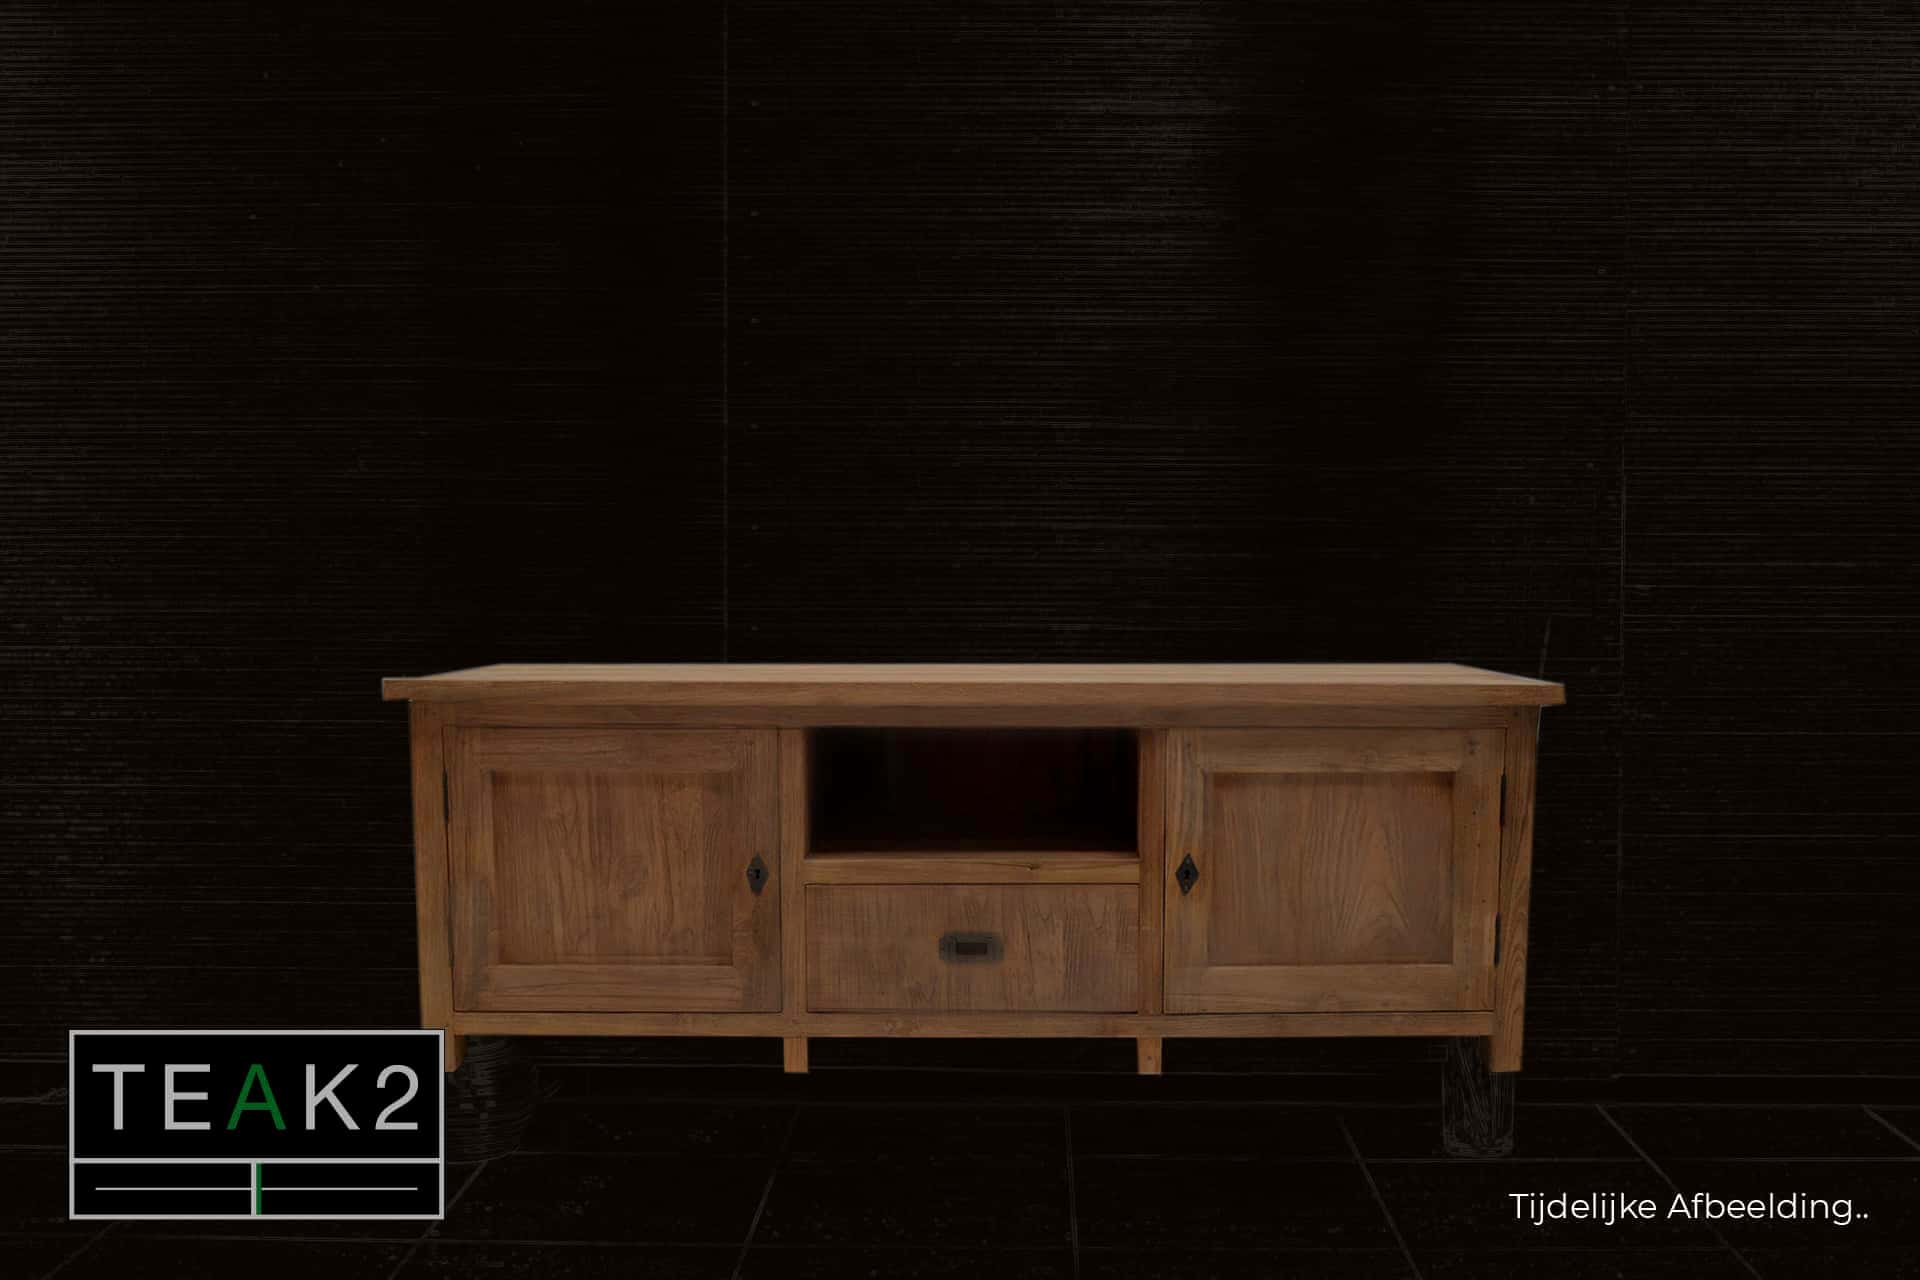 Teak Keluar Tv145 165l Old